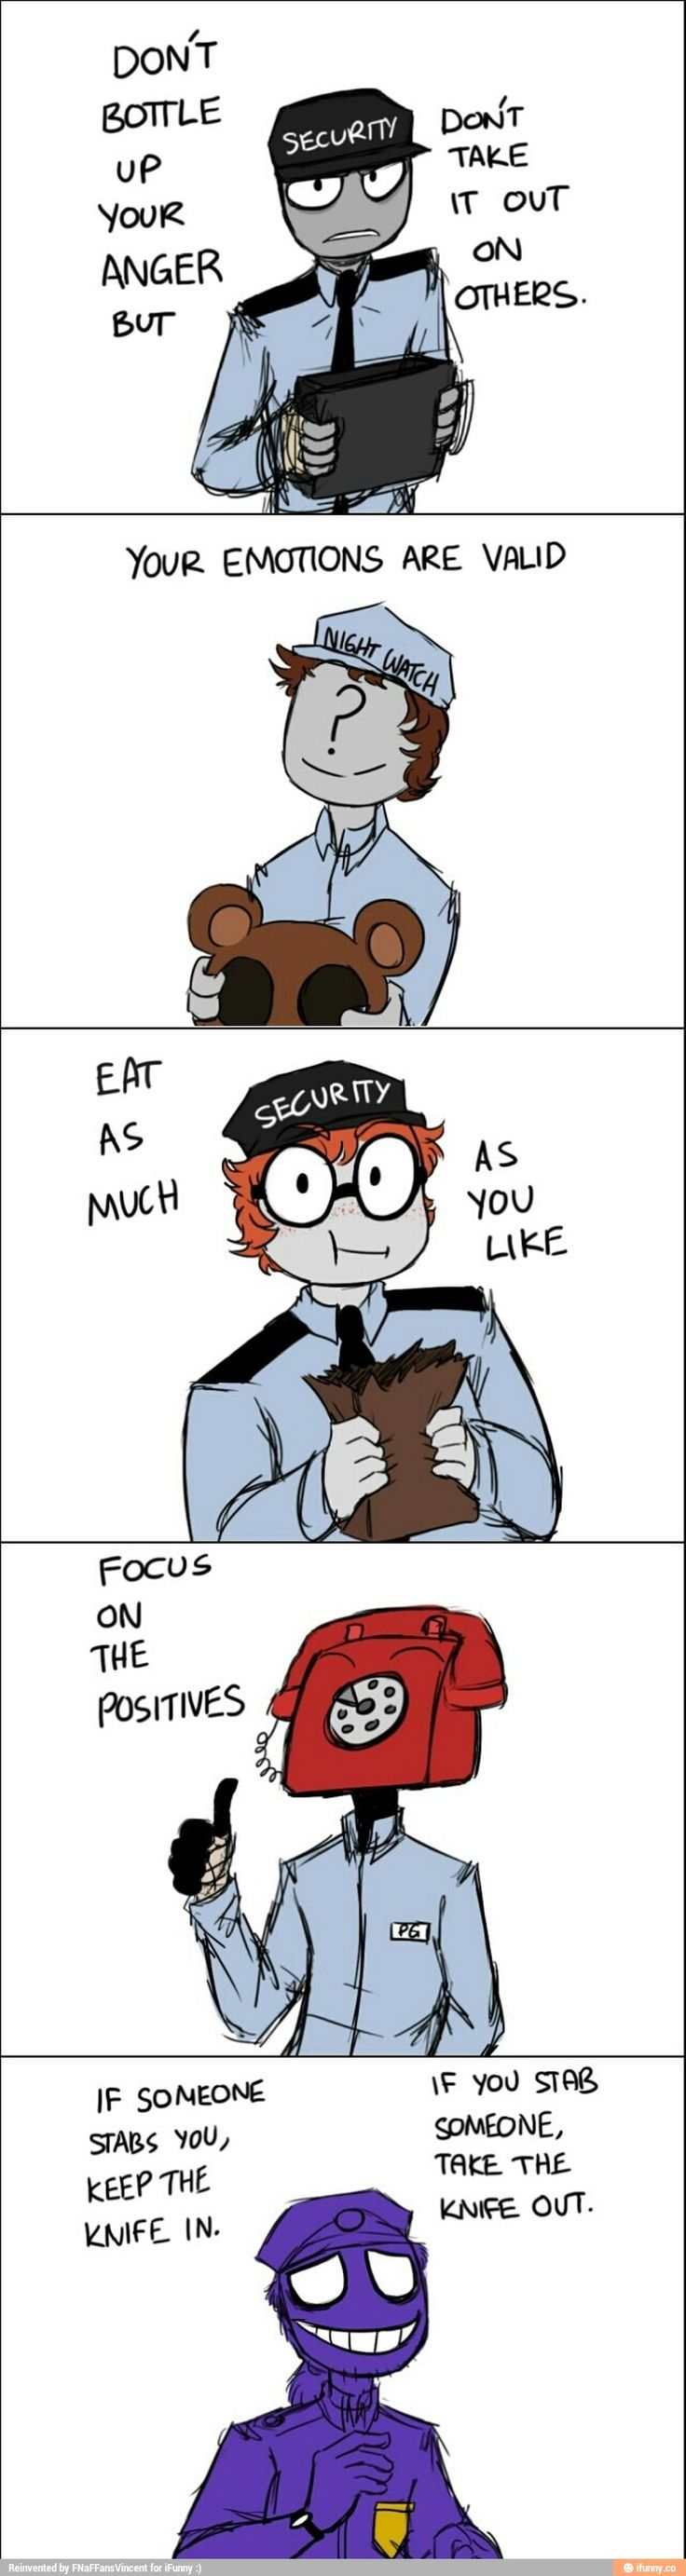 FNaFFansVincent on iFunny :)